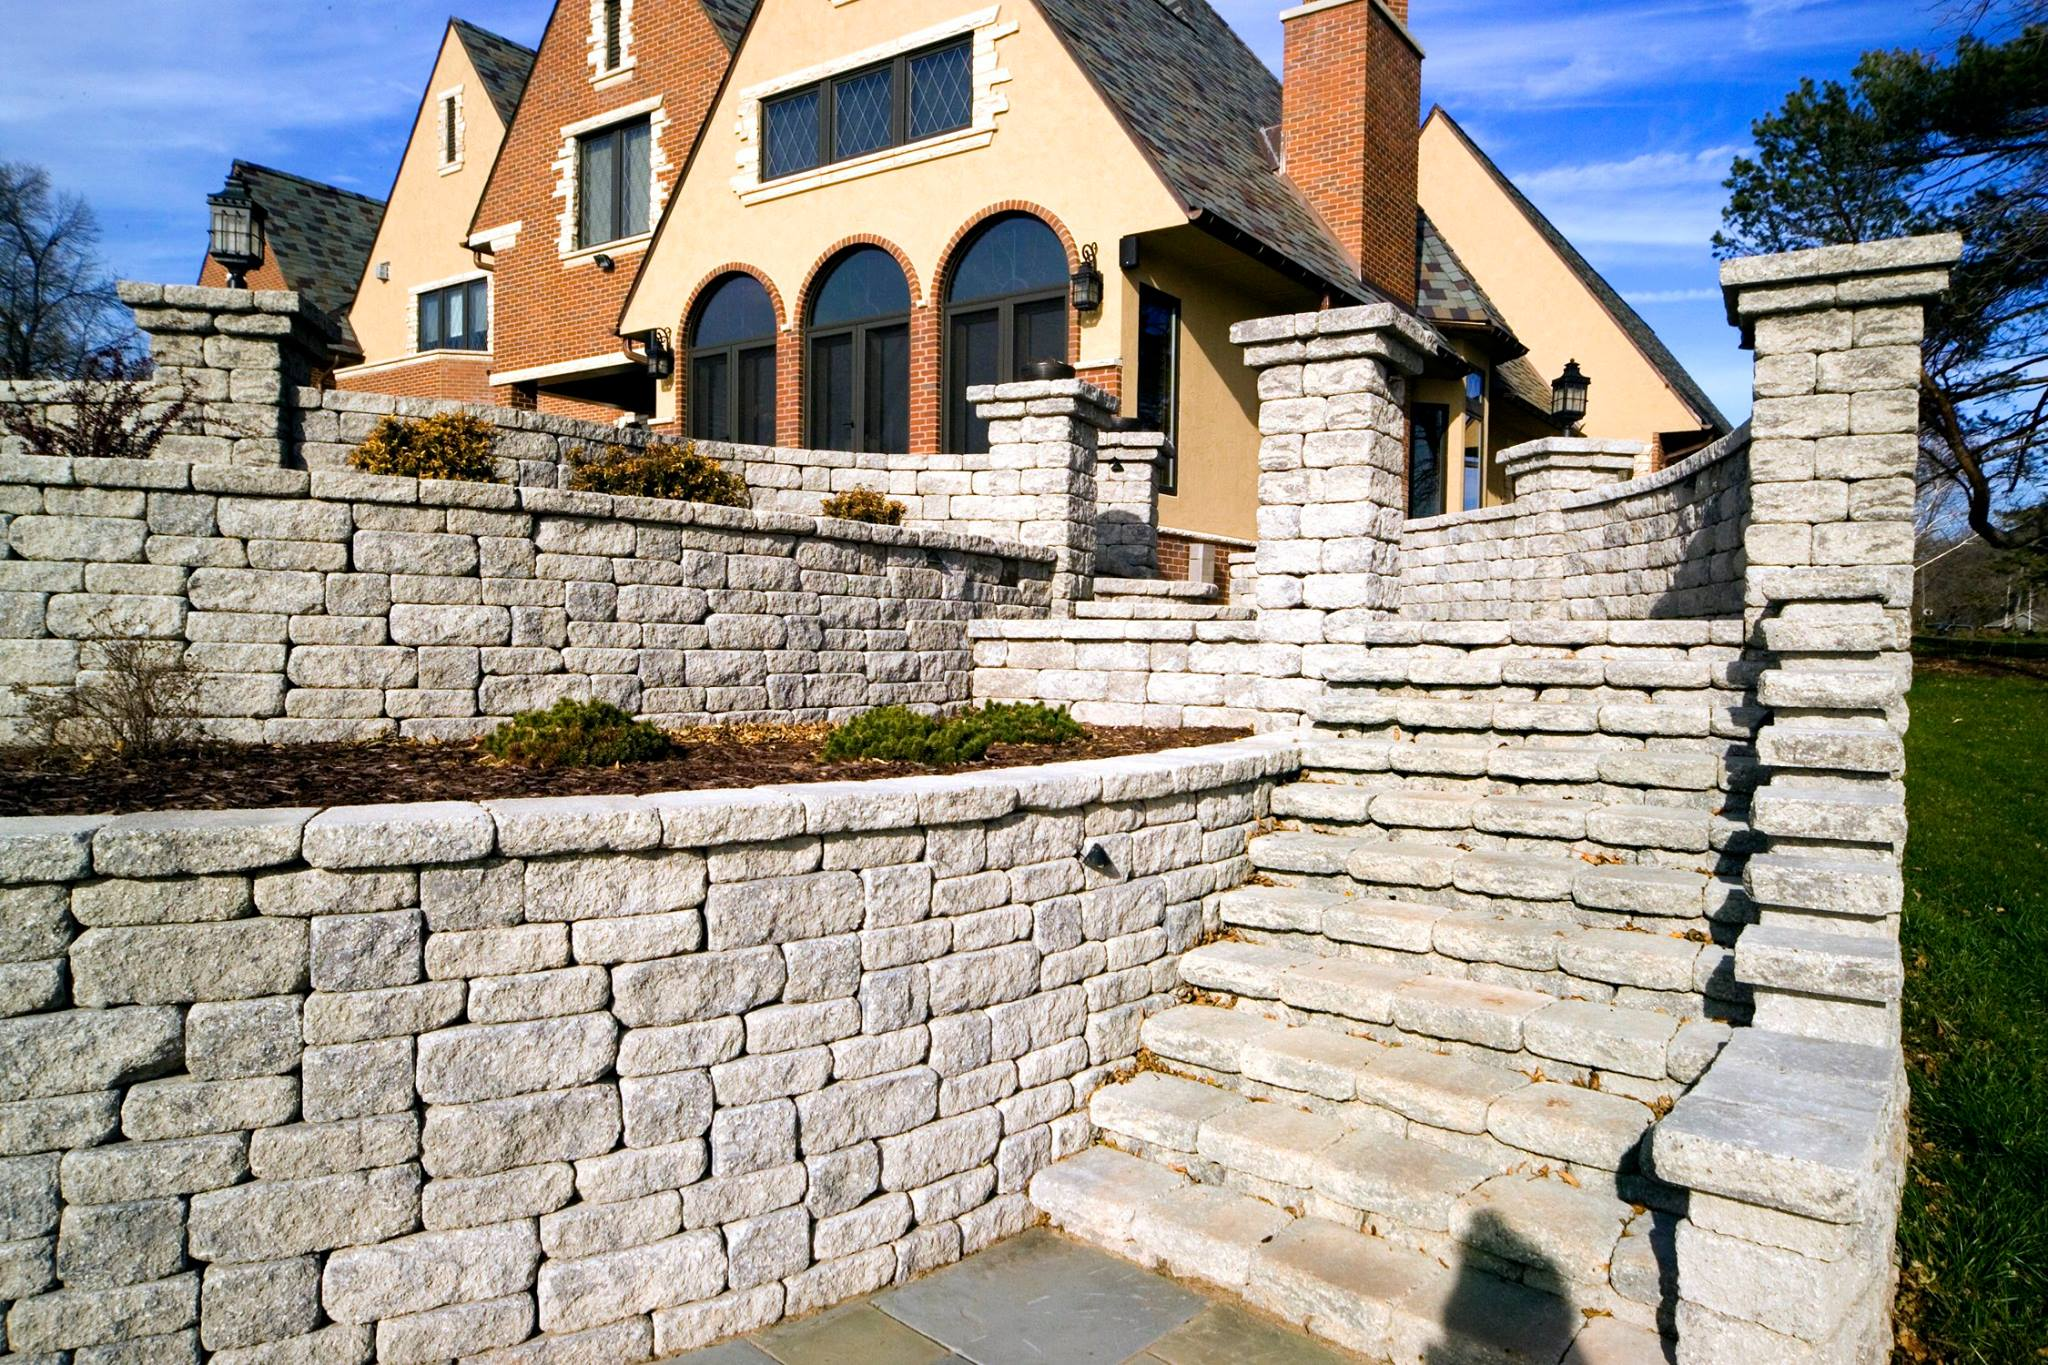 Vosters Landscaping | Brick | Hardscape | Outdoor Living | Patio | Paver Stairs